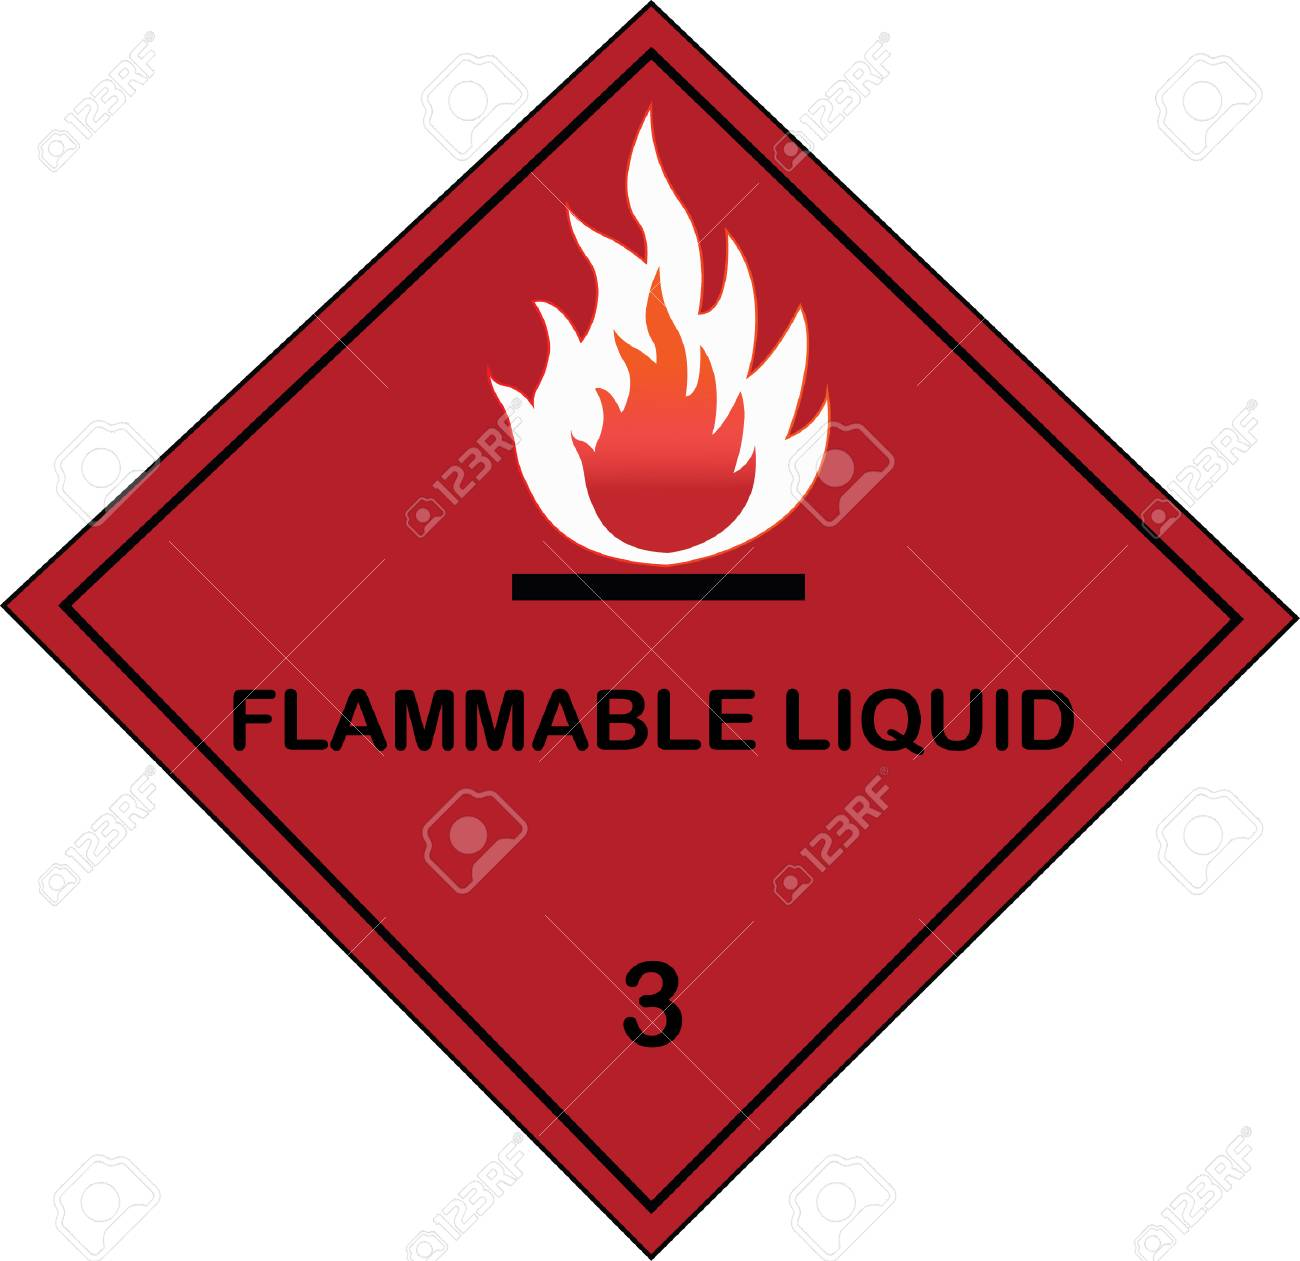 Flammable liquid sign on red isolated background Vector illustration. - 96004028